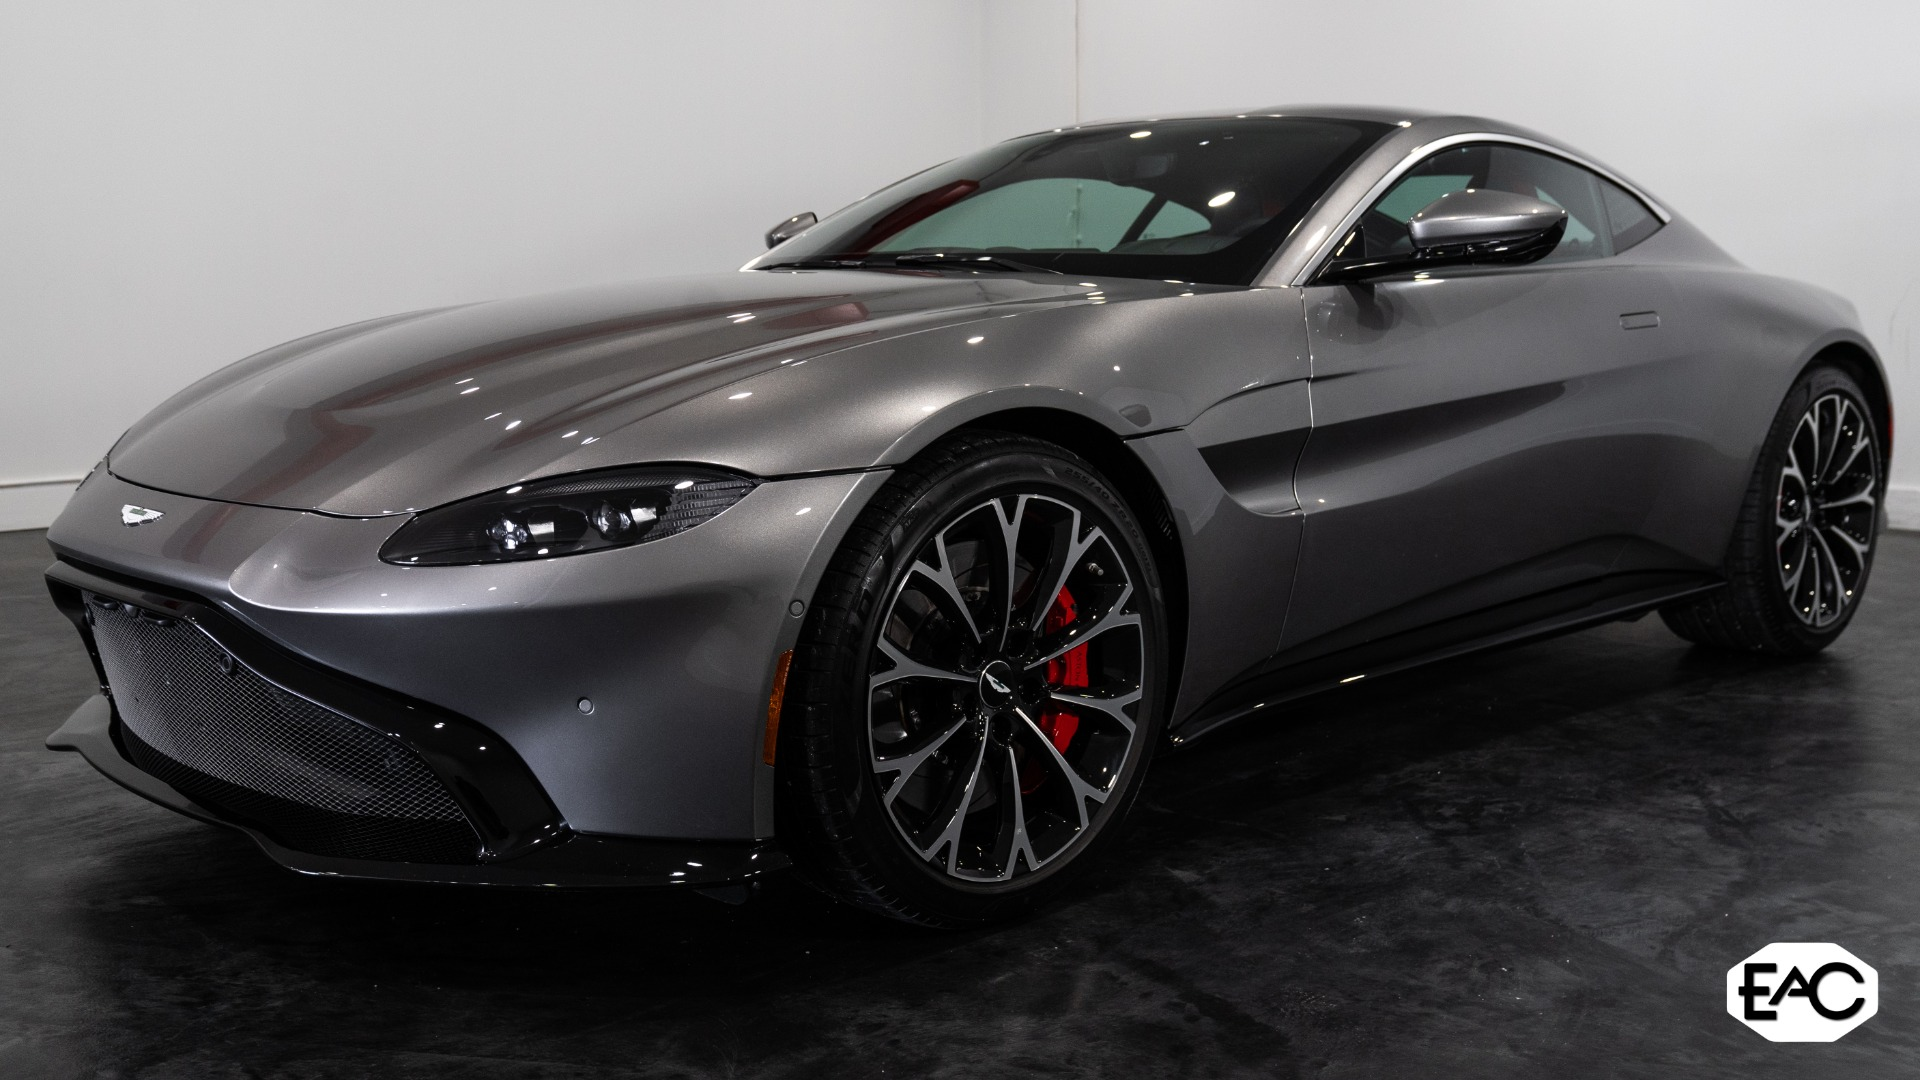 Used 2019 Aston Martin Vantage for sale Sold at Empire Auto Collection in Warren MI 48091 1